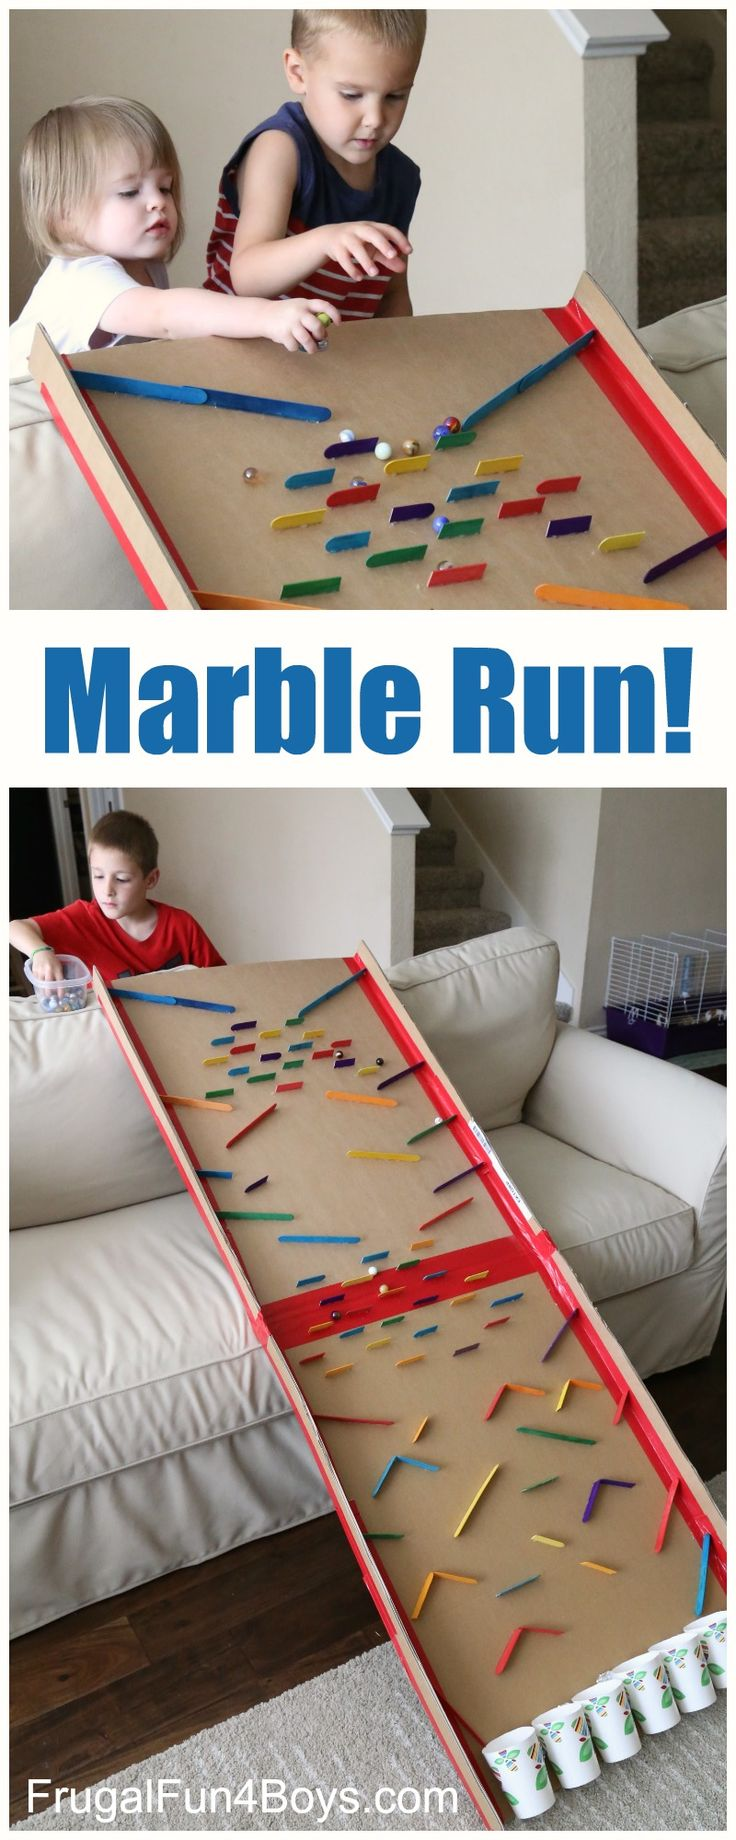 Turn a Cardboard Box into an Epic Marble Run - Awesome STEM project!